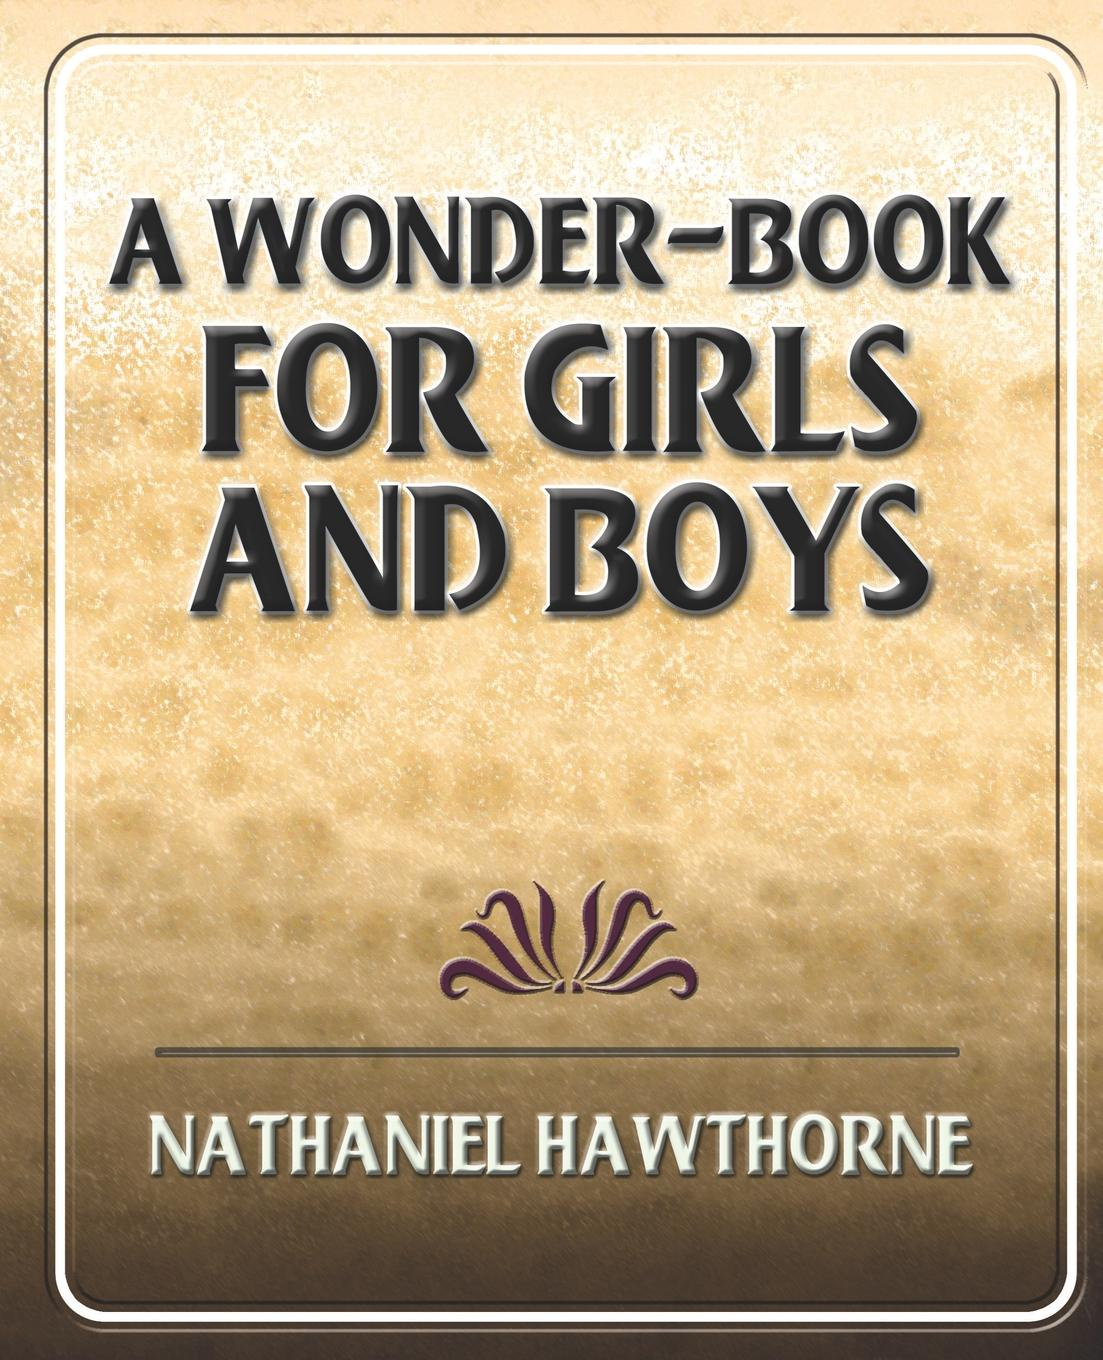 Hawthorne Nathaniel Hawthorne, A Wonder-Book for Girls and Boys